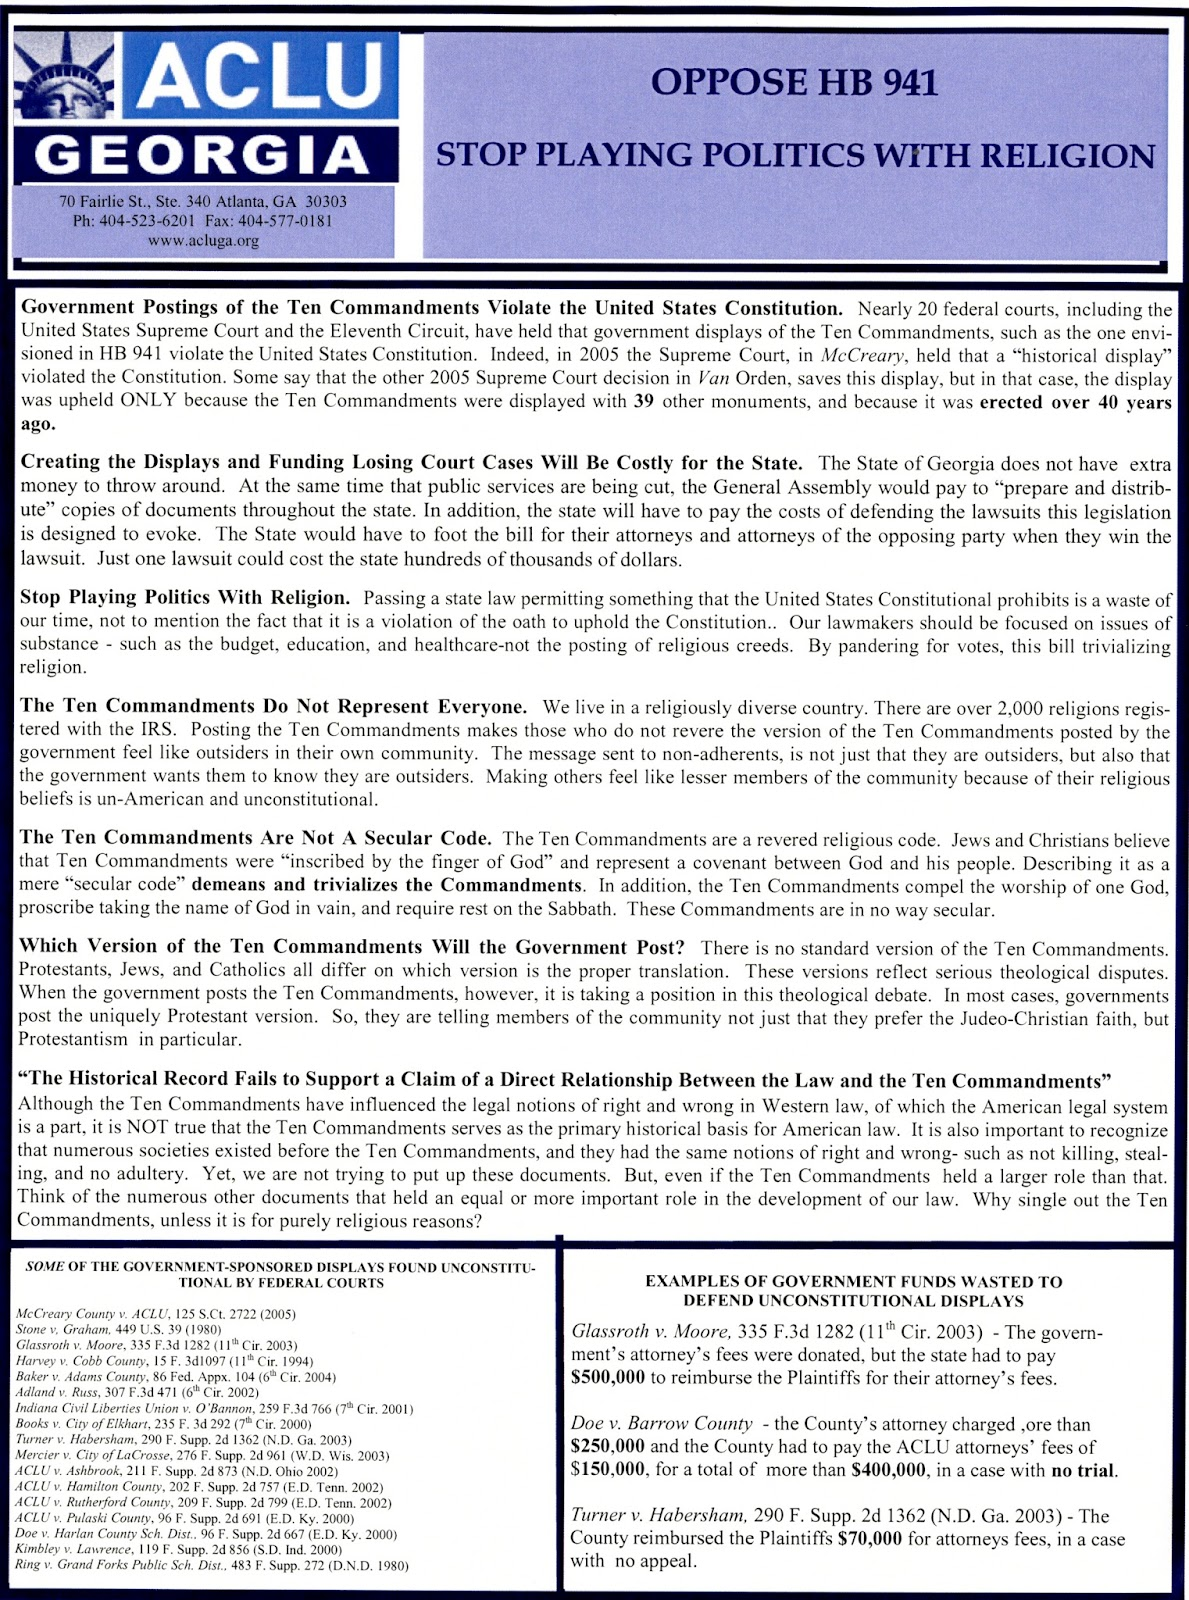 Richard b russell library for political research and studies 2016 flyer in opposition to hb 941 to allow local governments to display copies of the ten commandments ca 2006 source series iv box 2 folder 37 biocorpaavc Choice Image